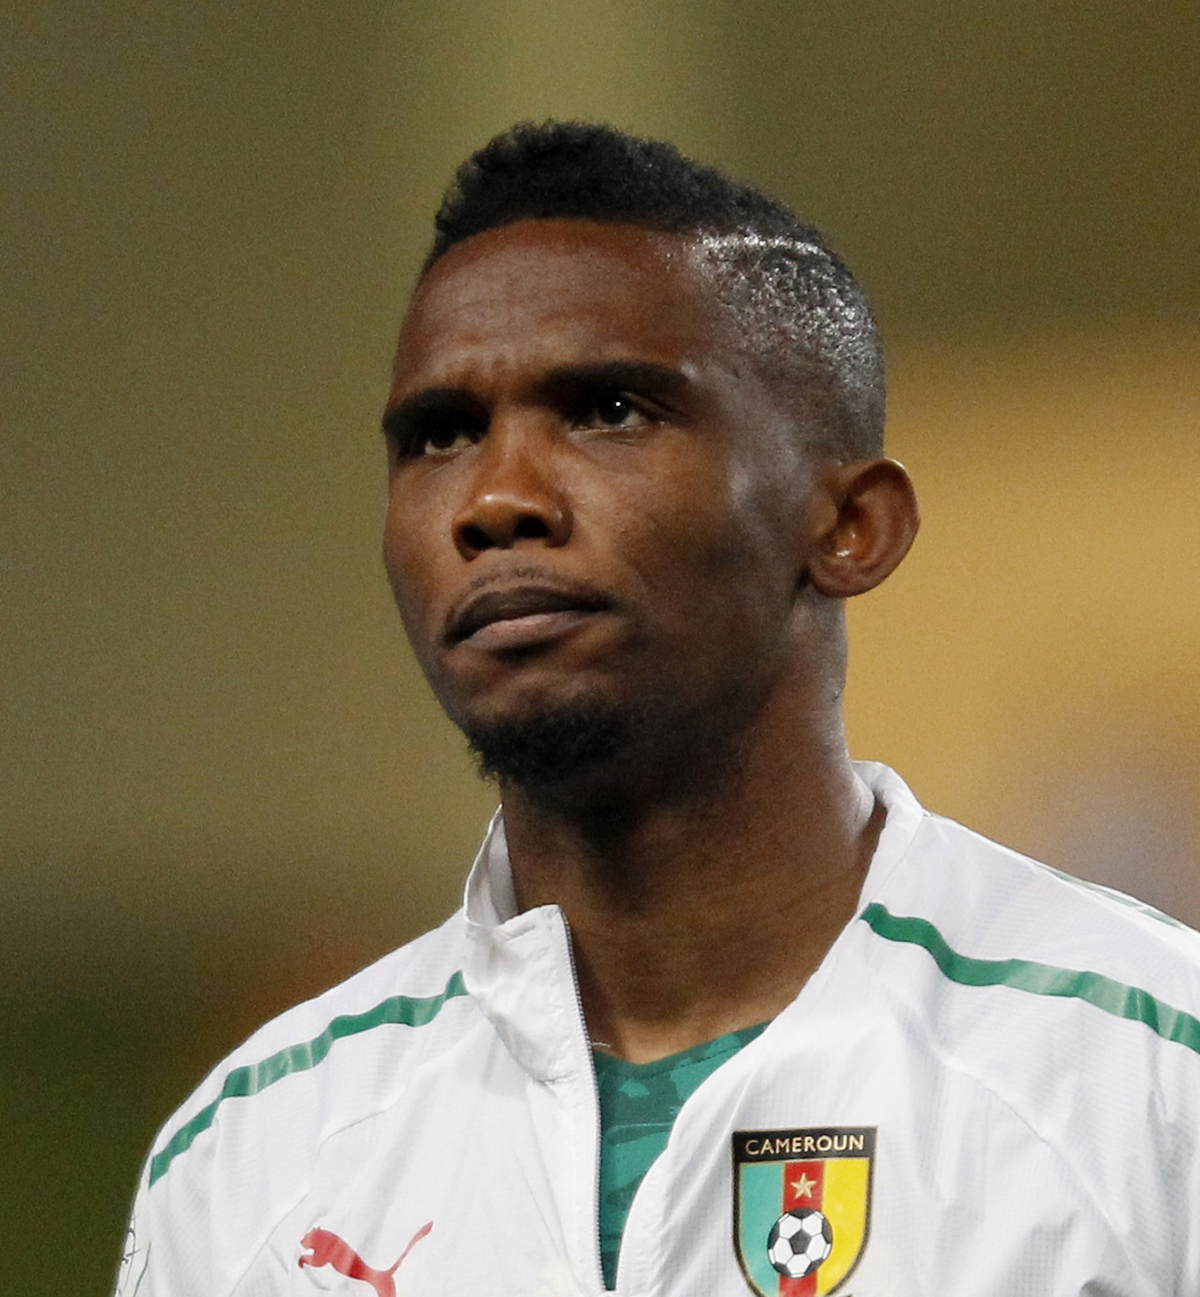 Cameroon forward Samuel Eto'o (Reuters)